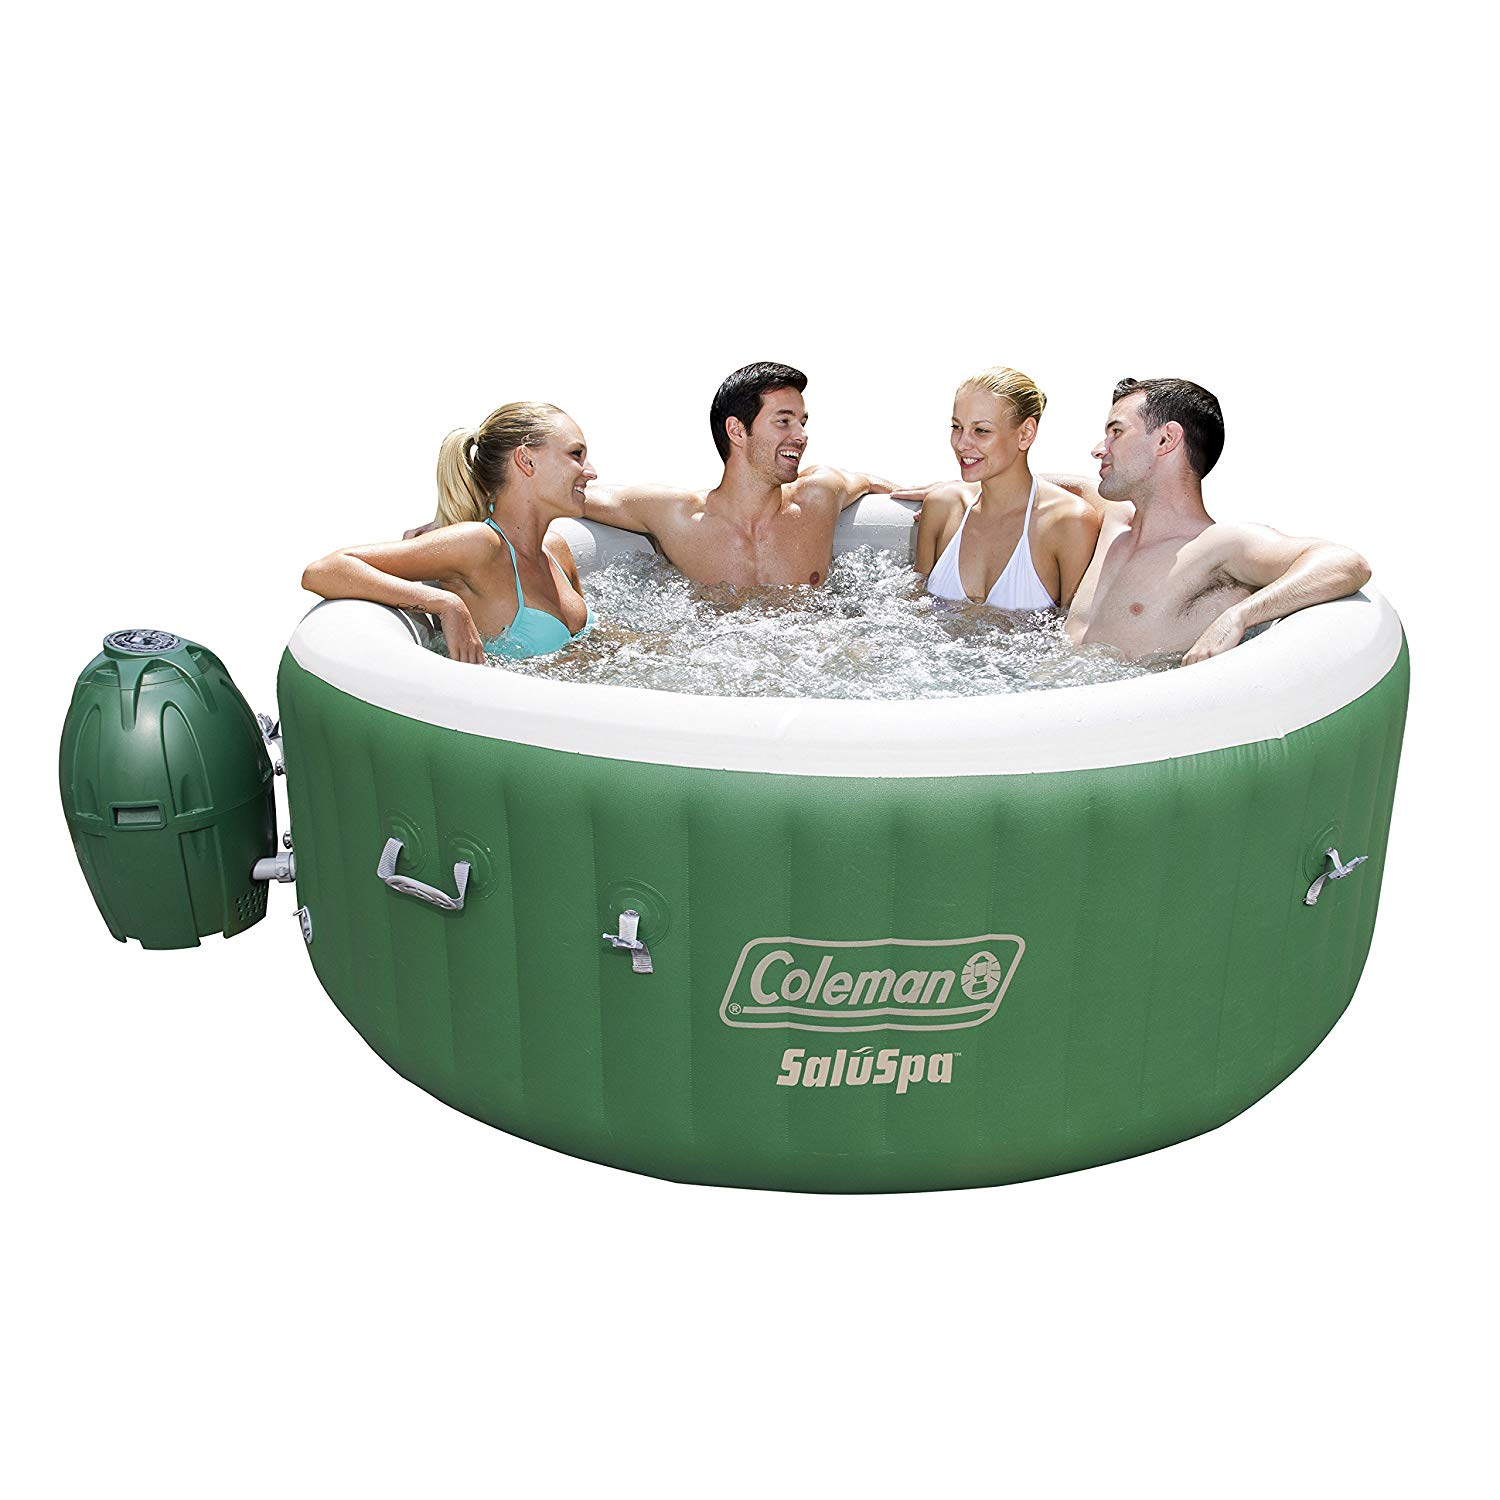 Coleman Saluspa Inflatable Hot Tub Spa